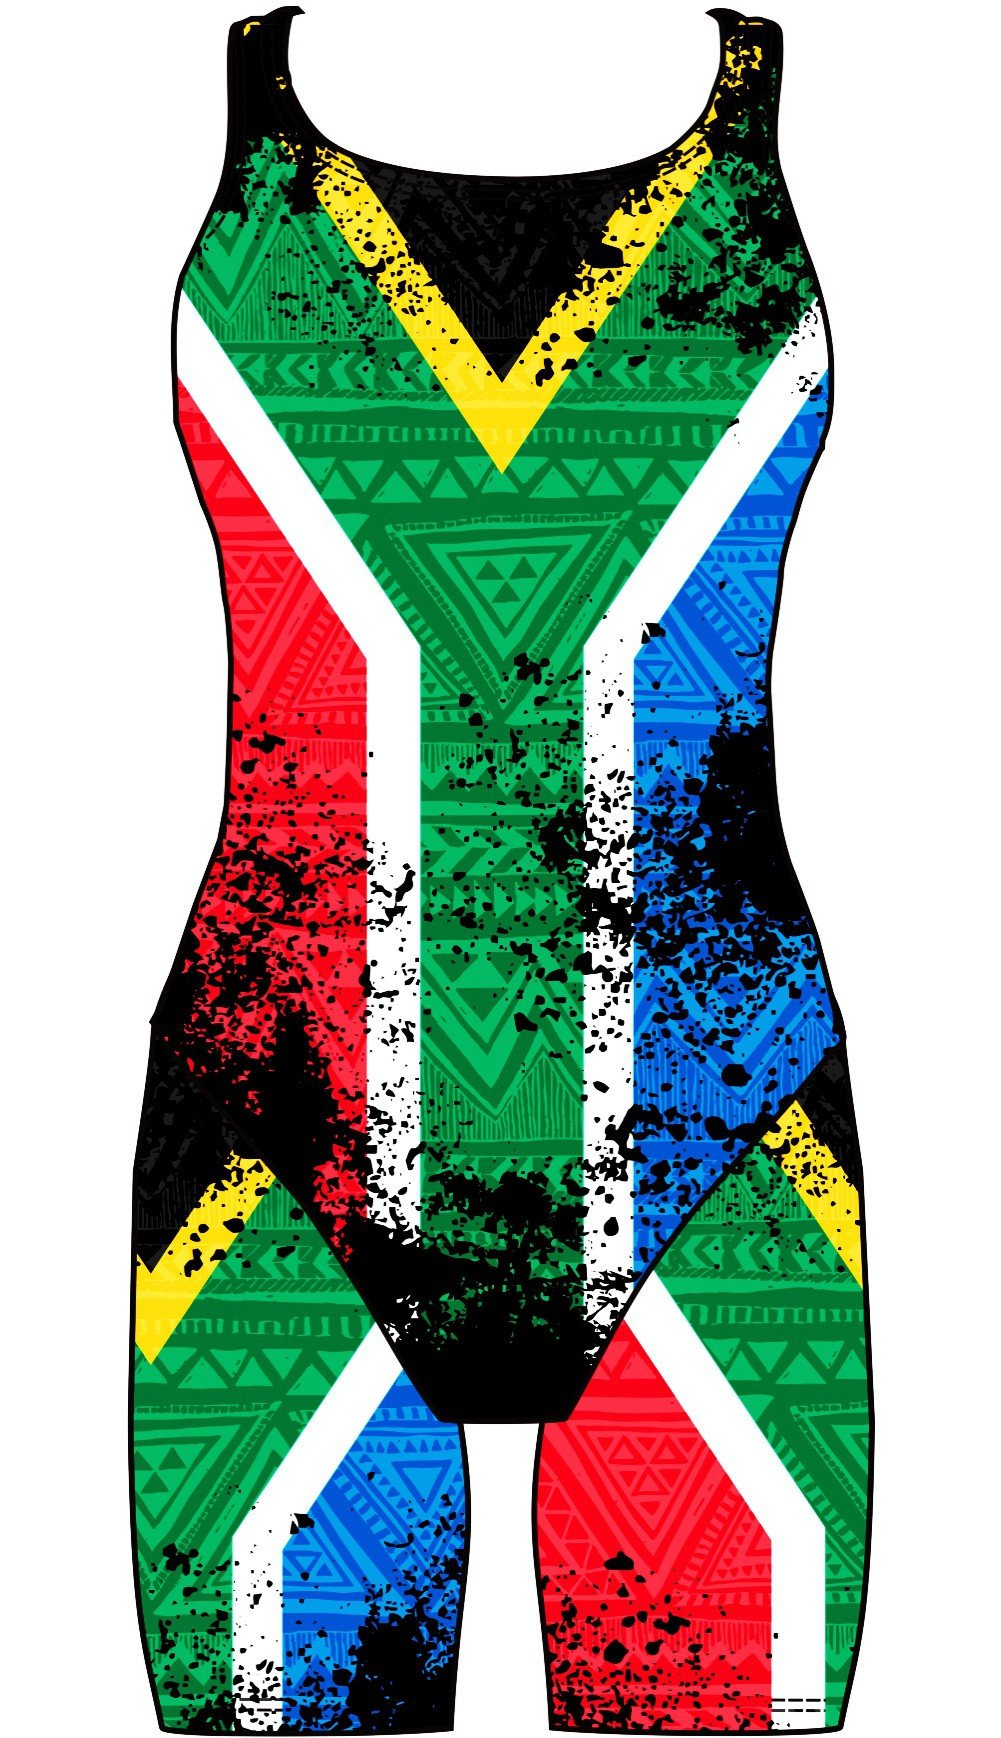 Female kneeskin swimsuit - South African Flag - DG apparel competitive swimwear lifesaving waterpolo south african flag swimwear triathlon running